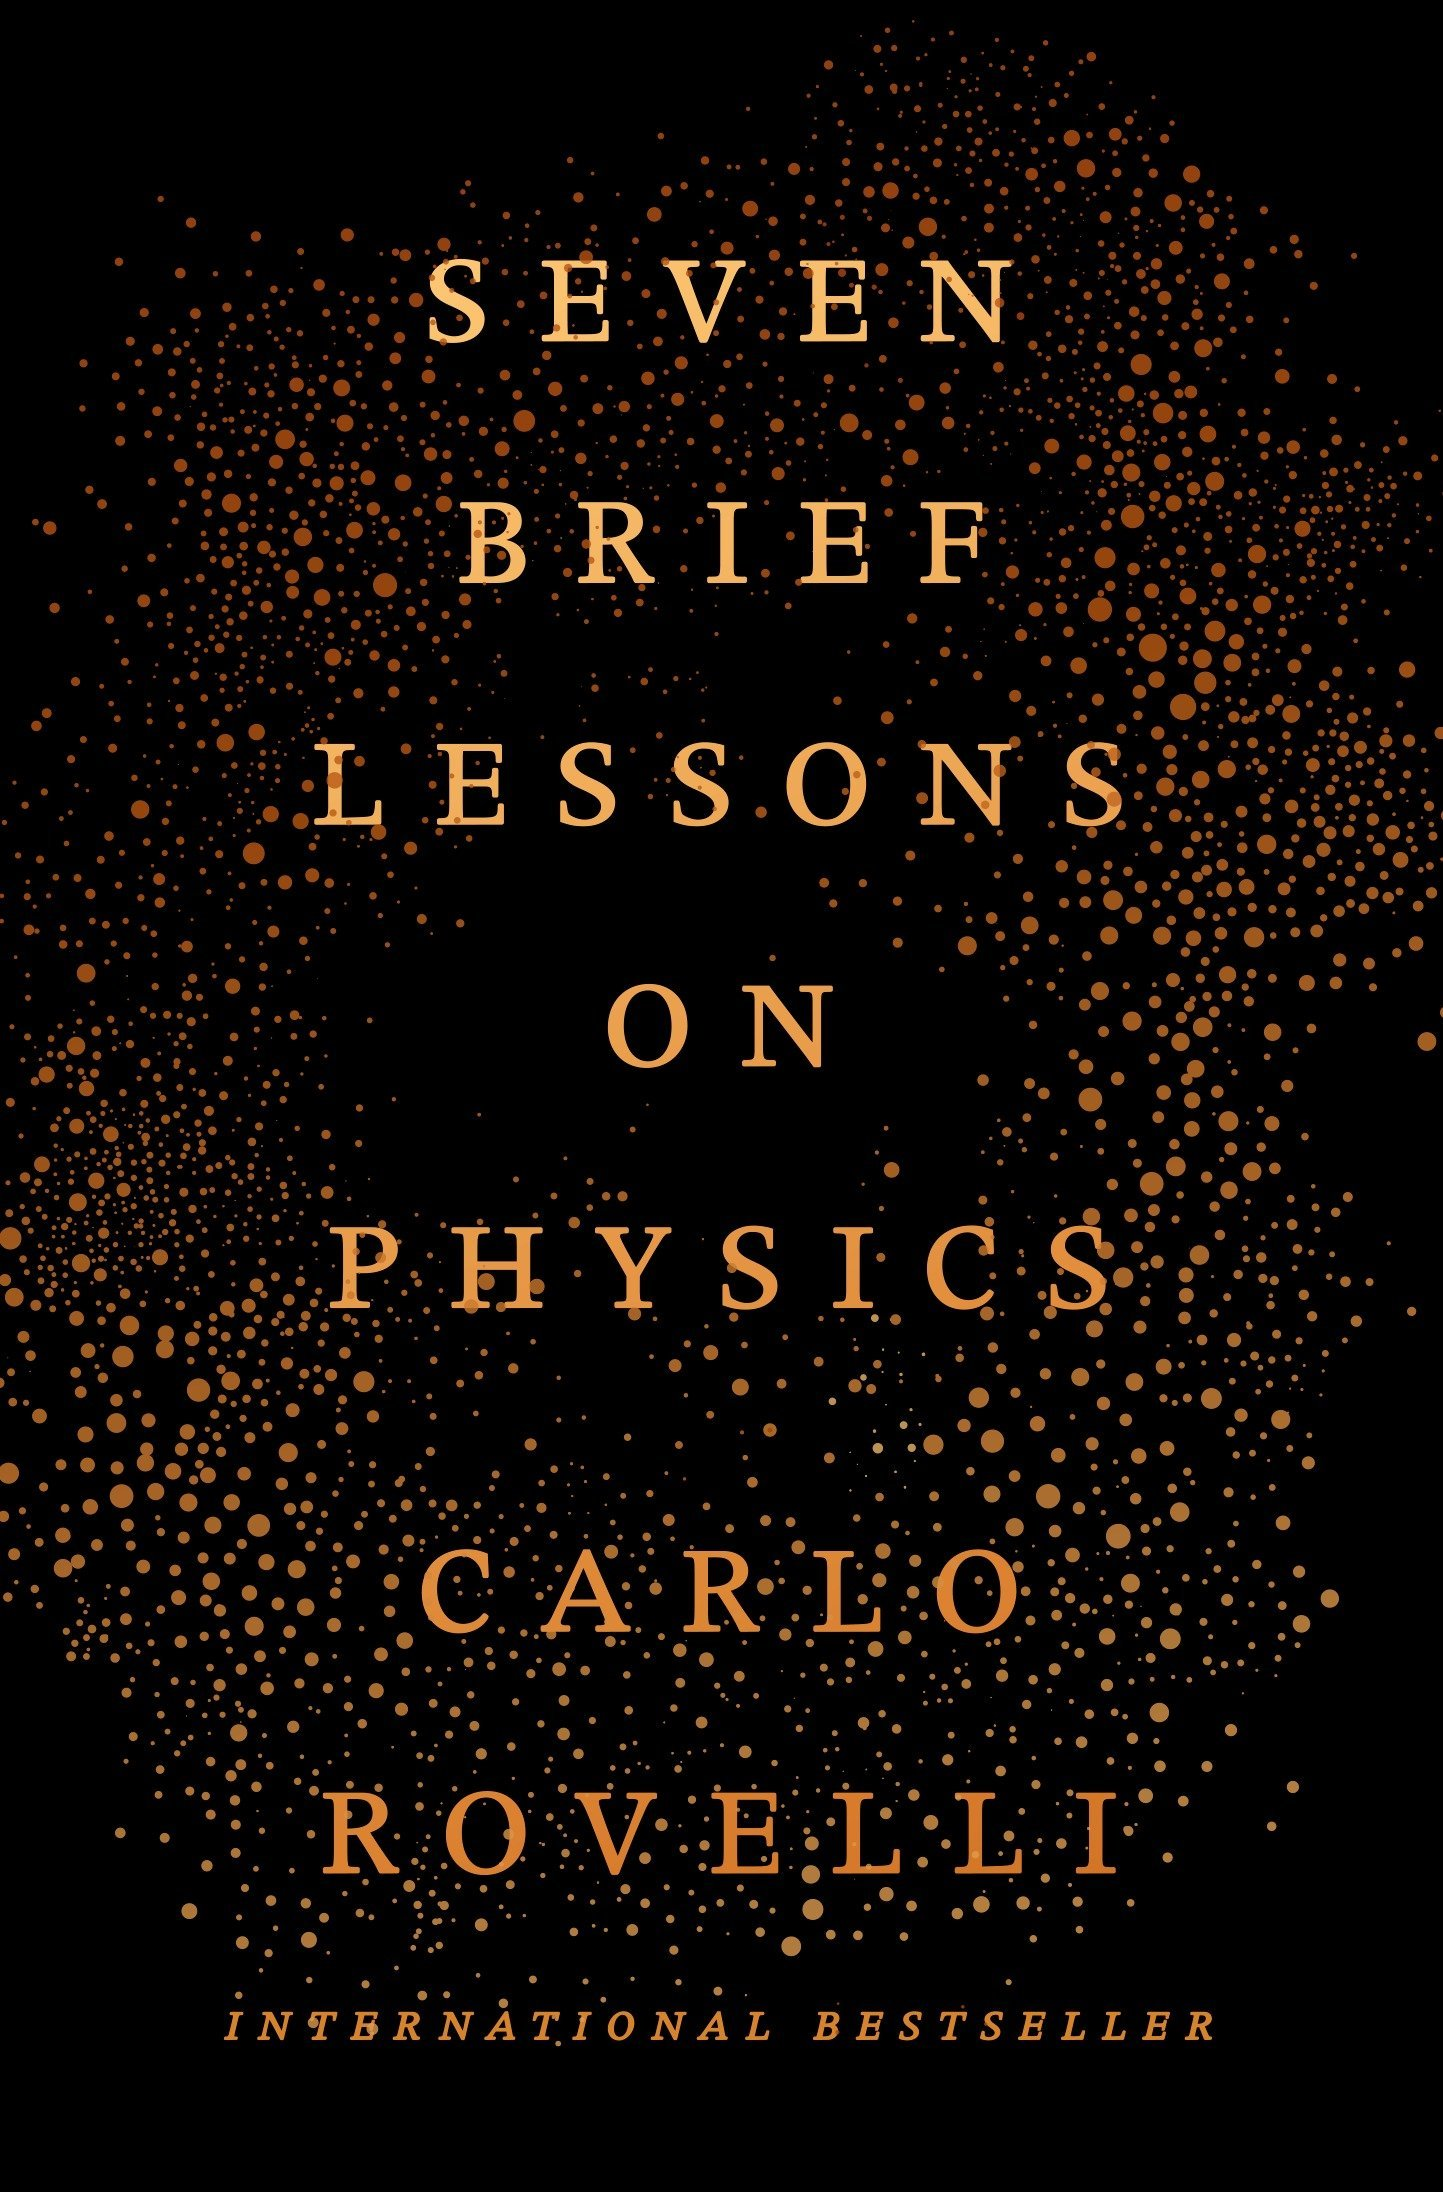 Seven Brief Lessons on Physics: Carlo Rovelli: 9780399184413: Books -  Amazon.ca